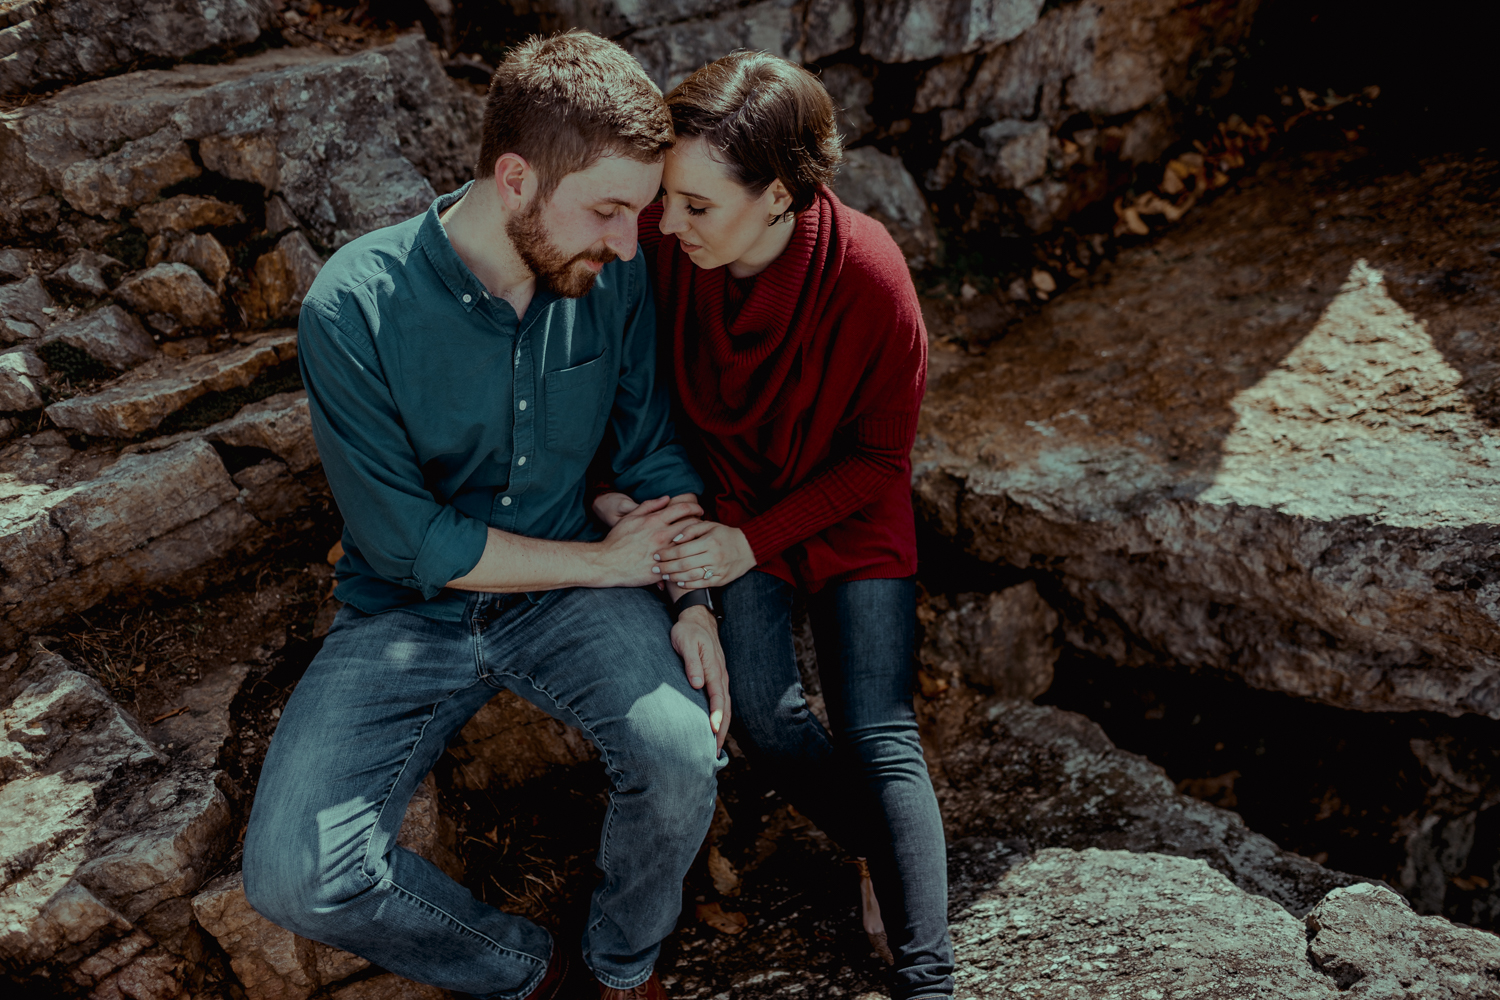 pole_steeple_engagement_session_pine_grove_furnace_state_park_adventurous_mountain_photography-0122.jpg